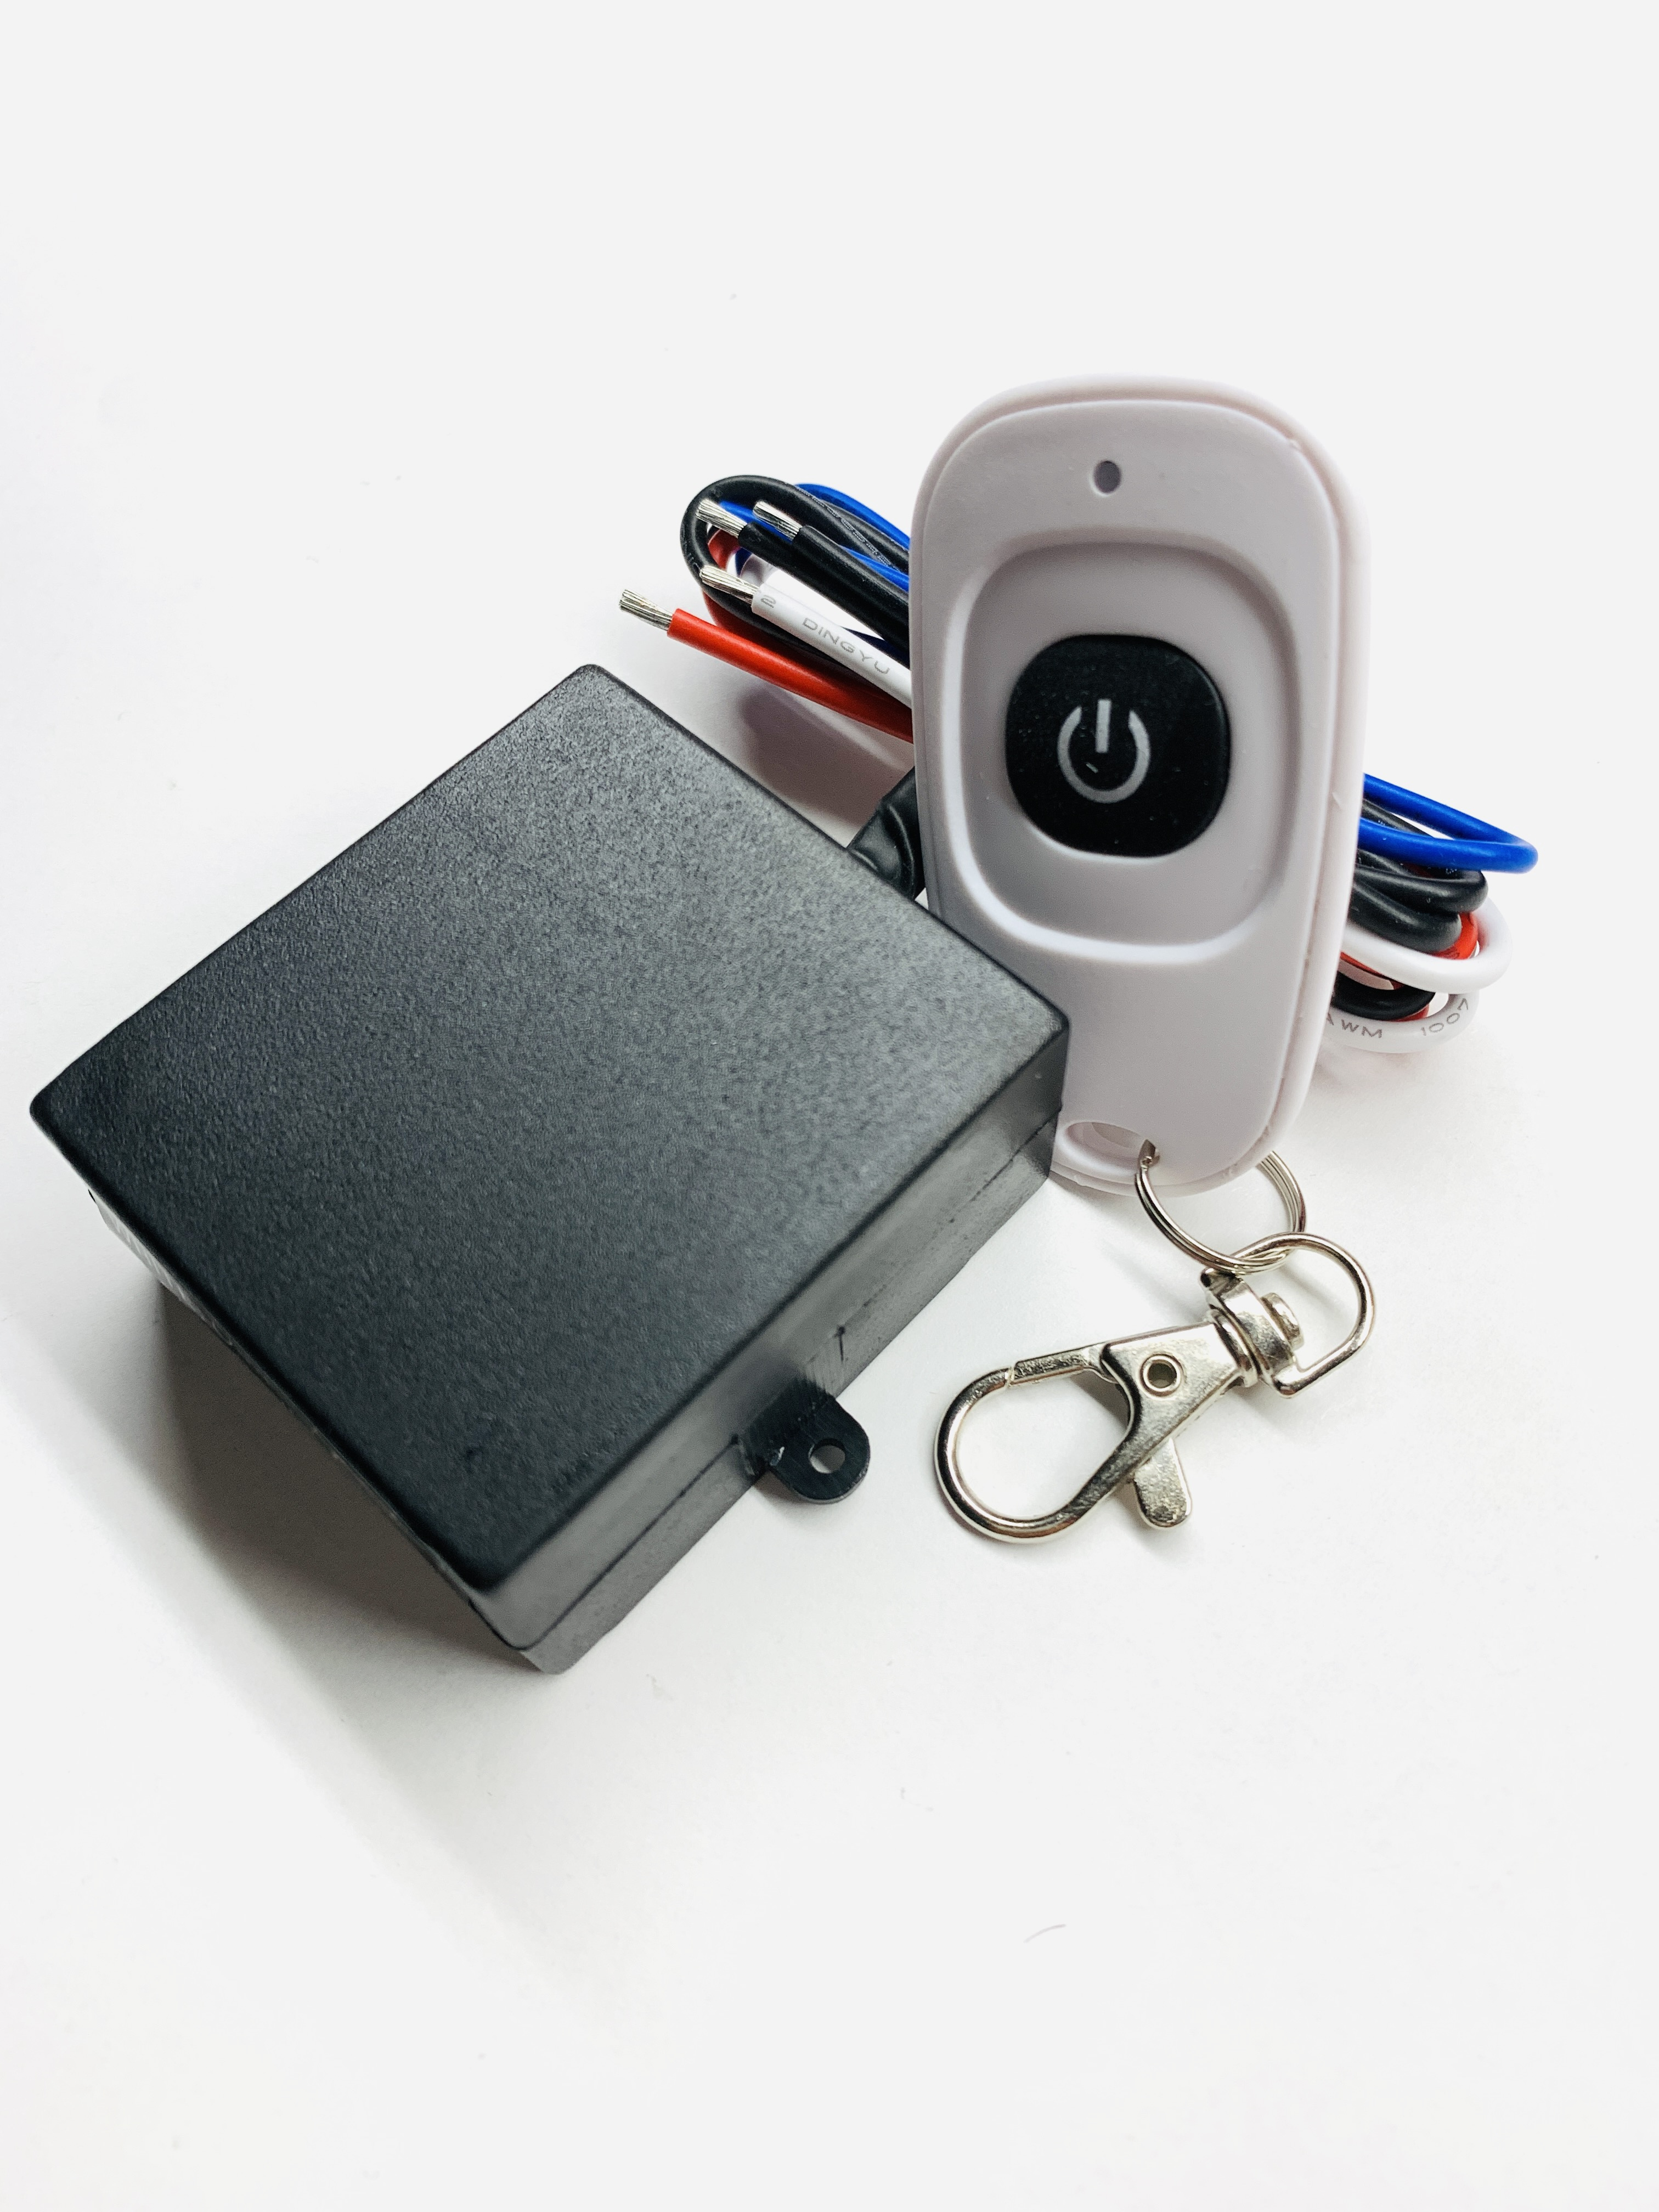 MSD 12V DC On-Off Wireless key fob remote control relay switch with